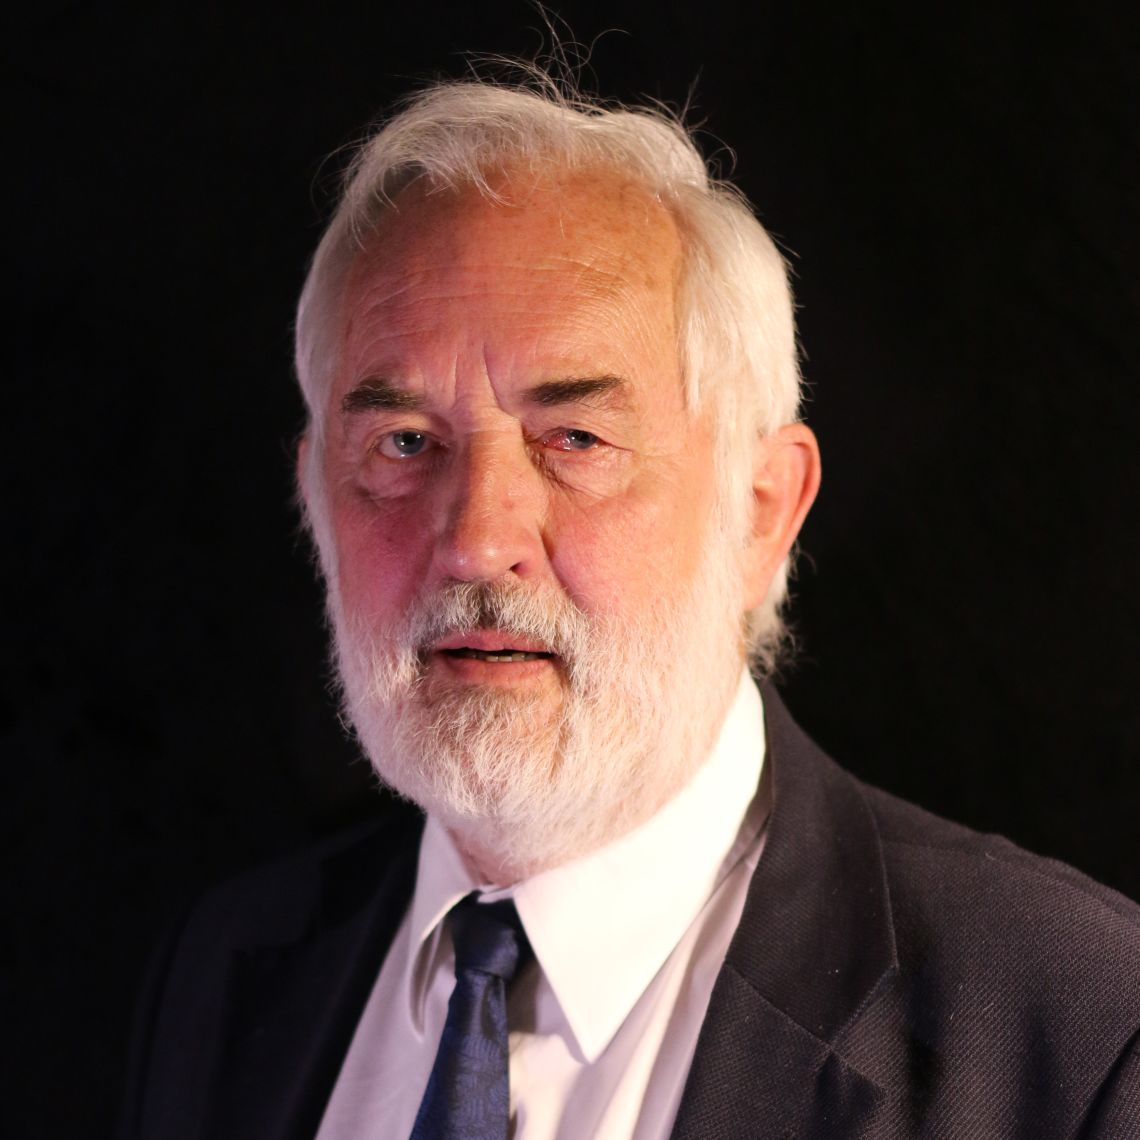 Dr Gerry Kendall